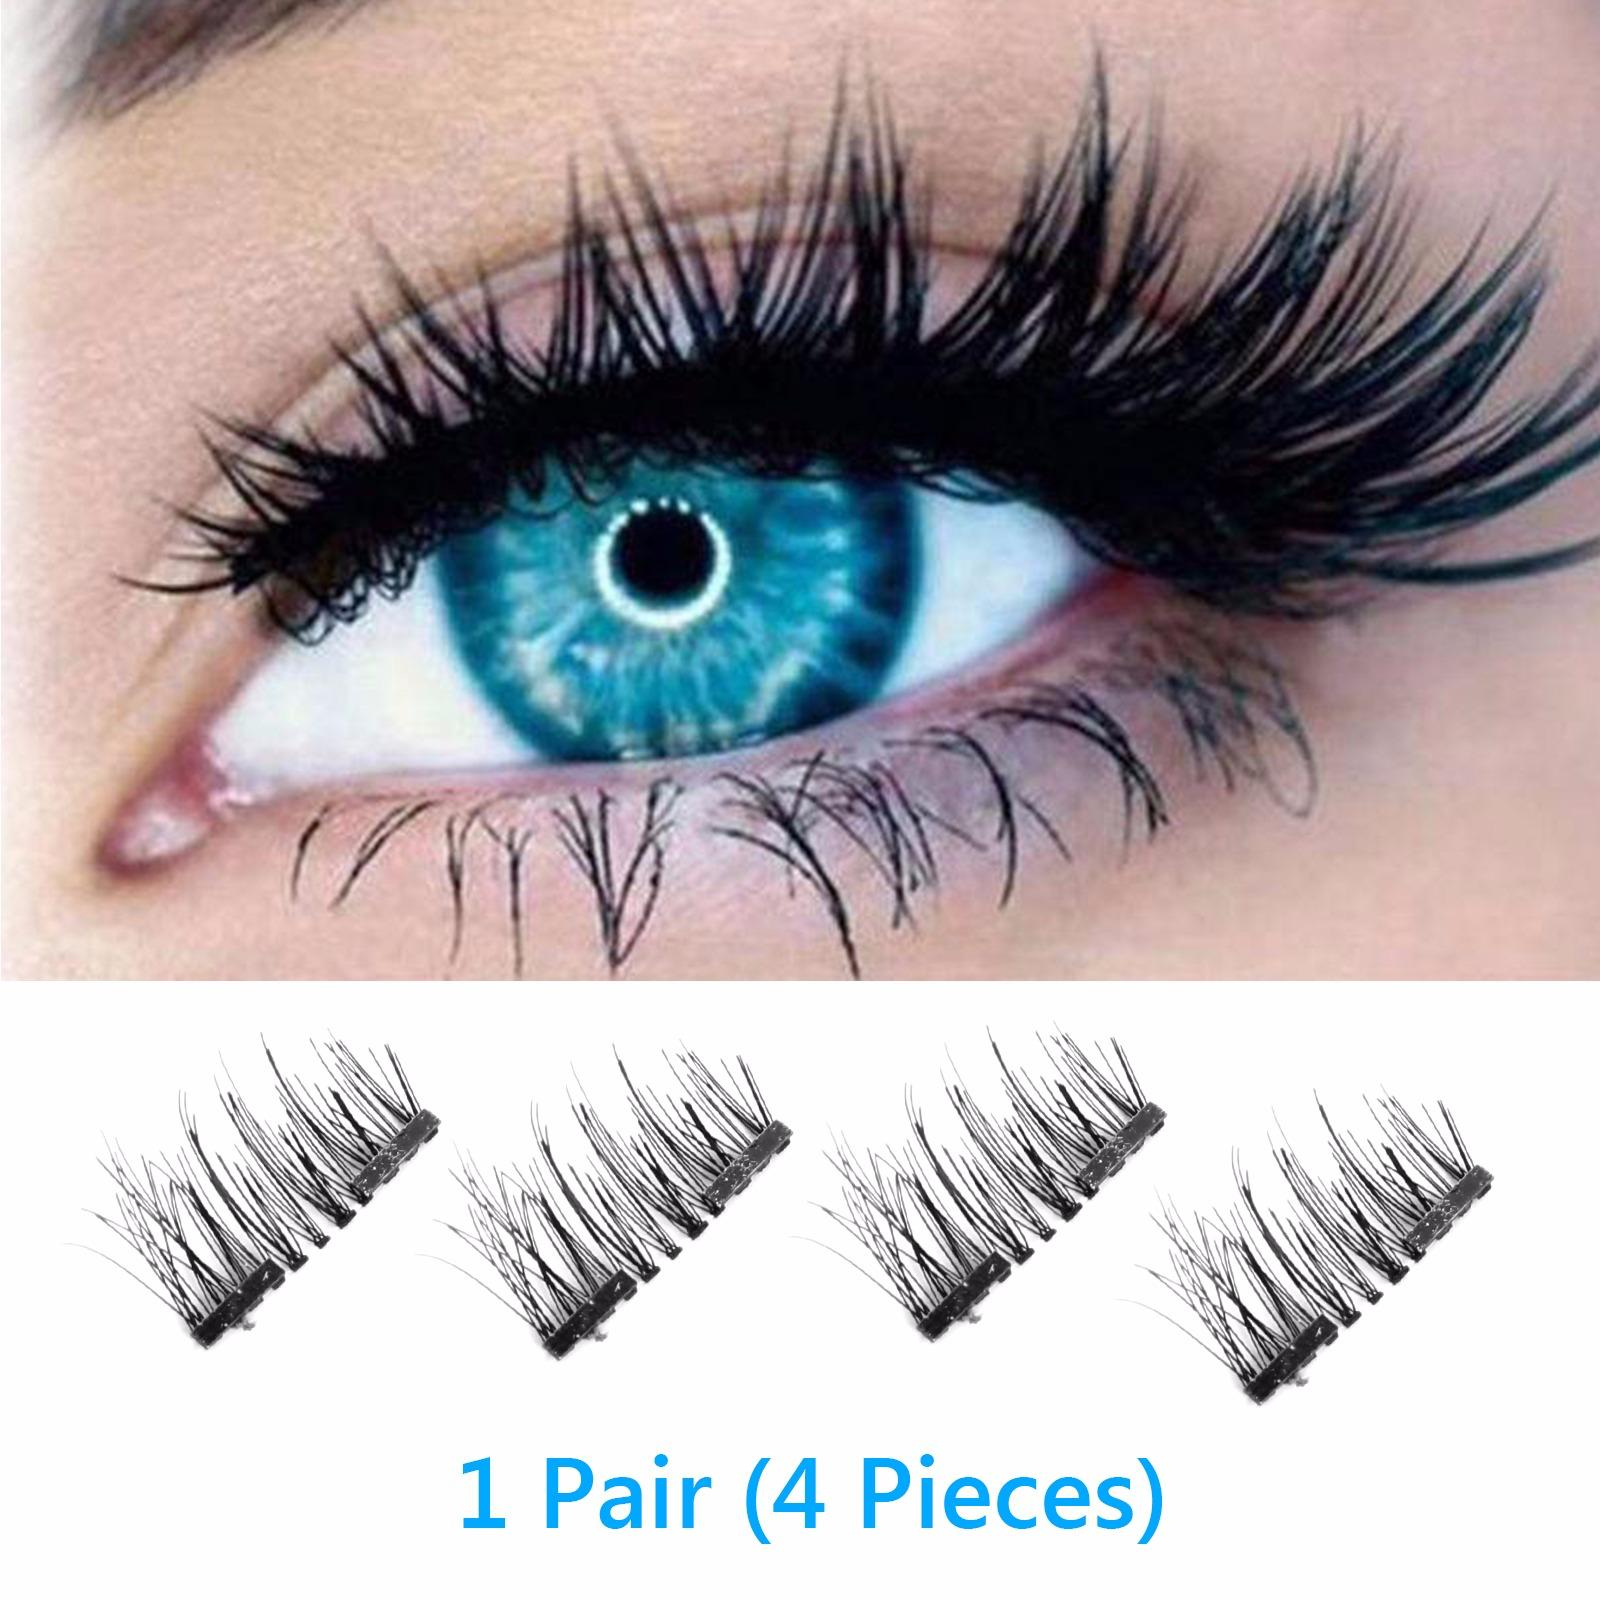 Magnetic Eyelashes False, 4pcs/pair Magnetic 3d Eyelashes Double Handmade Natural False Long Eye Lash Reusable(double Magnet Eyelashes False) By Wripples.